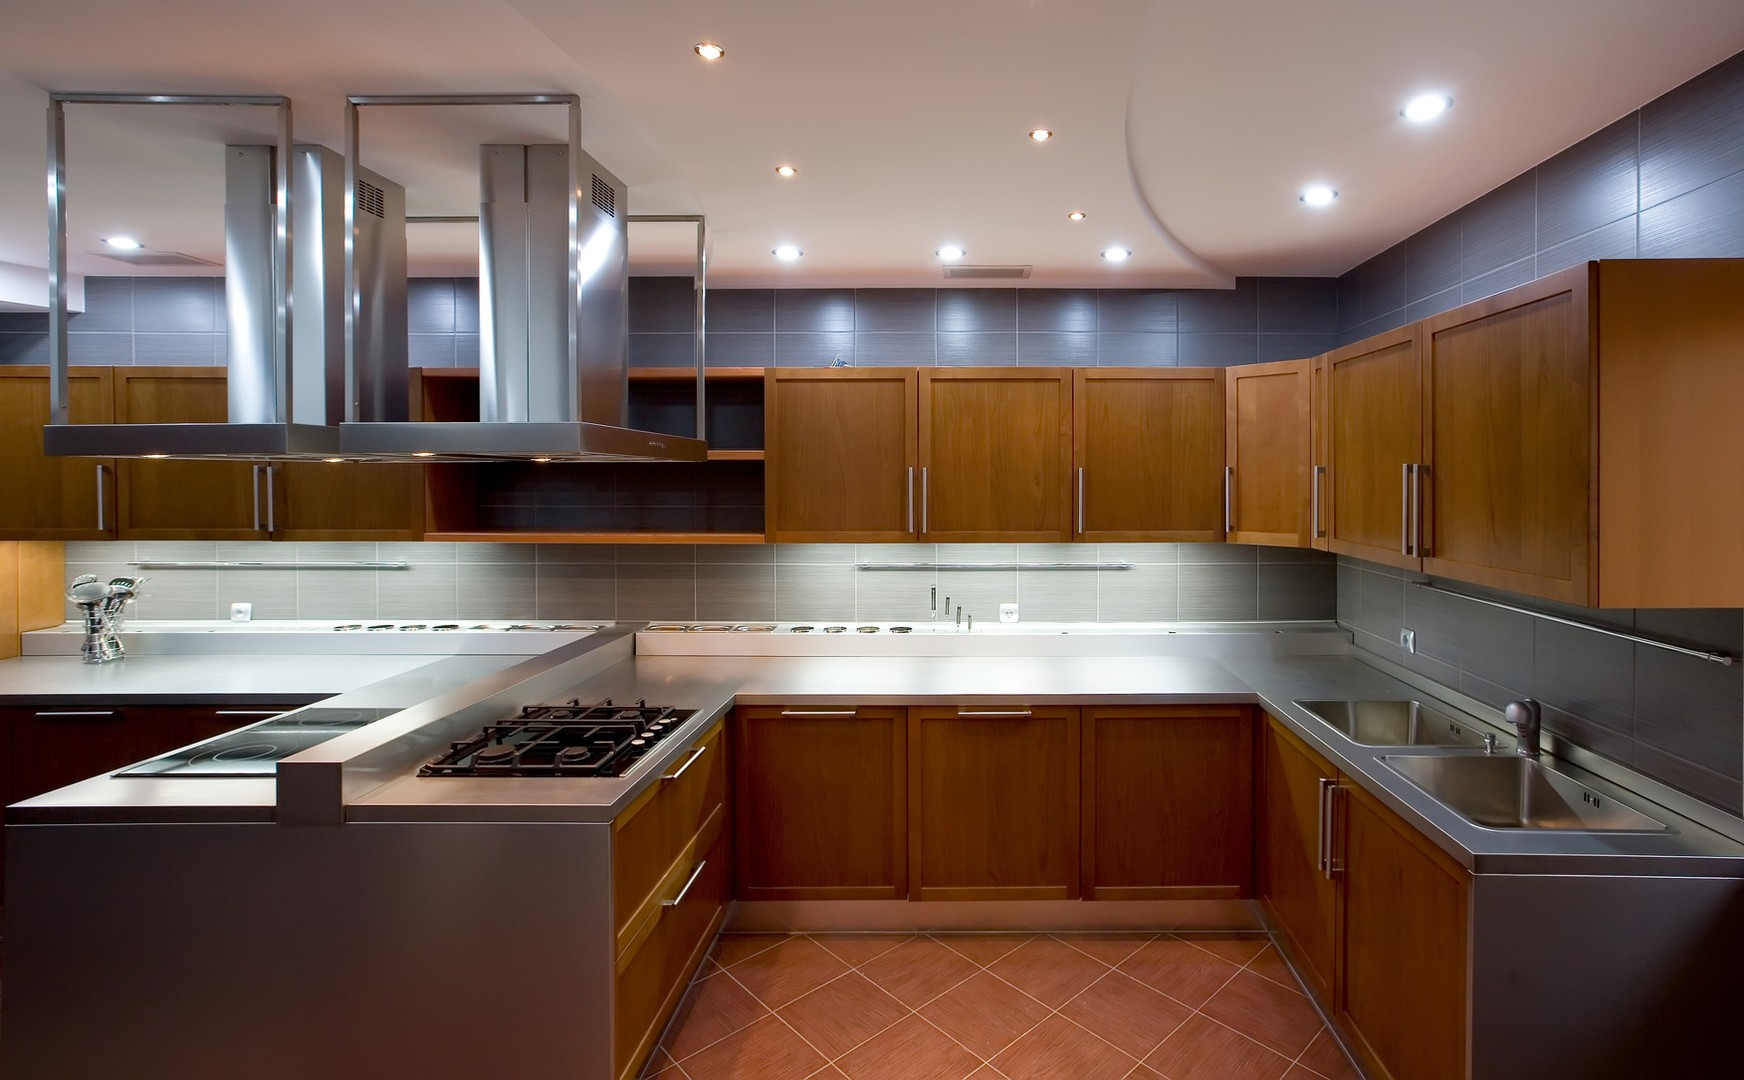 Which Are The Best Countertops For Commercial Kitchens